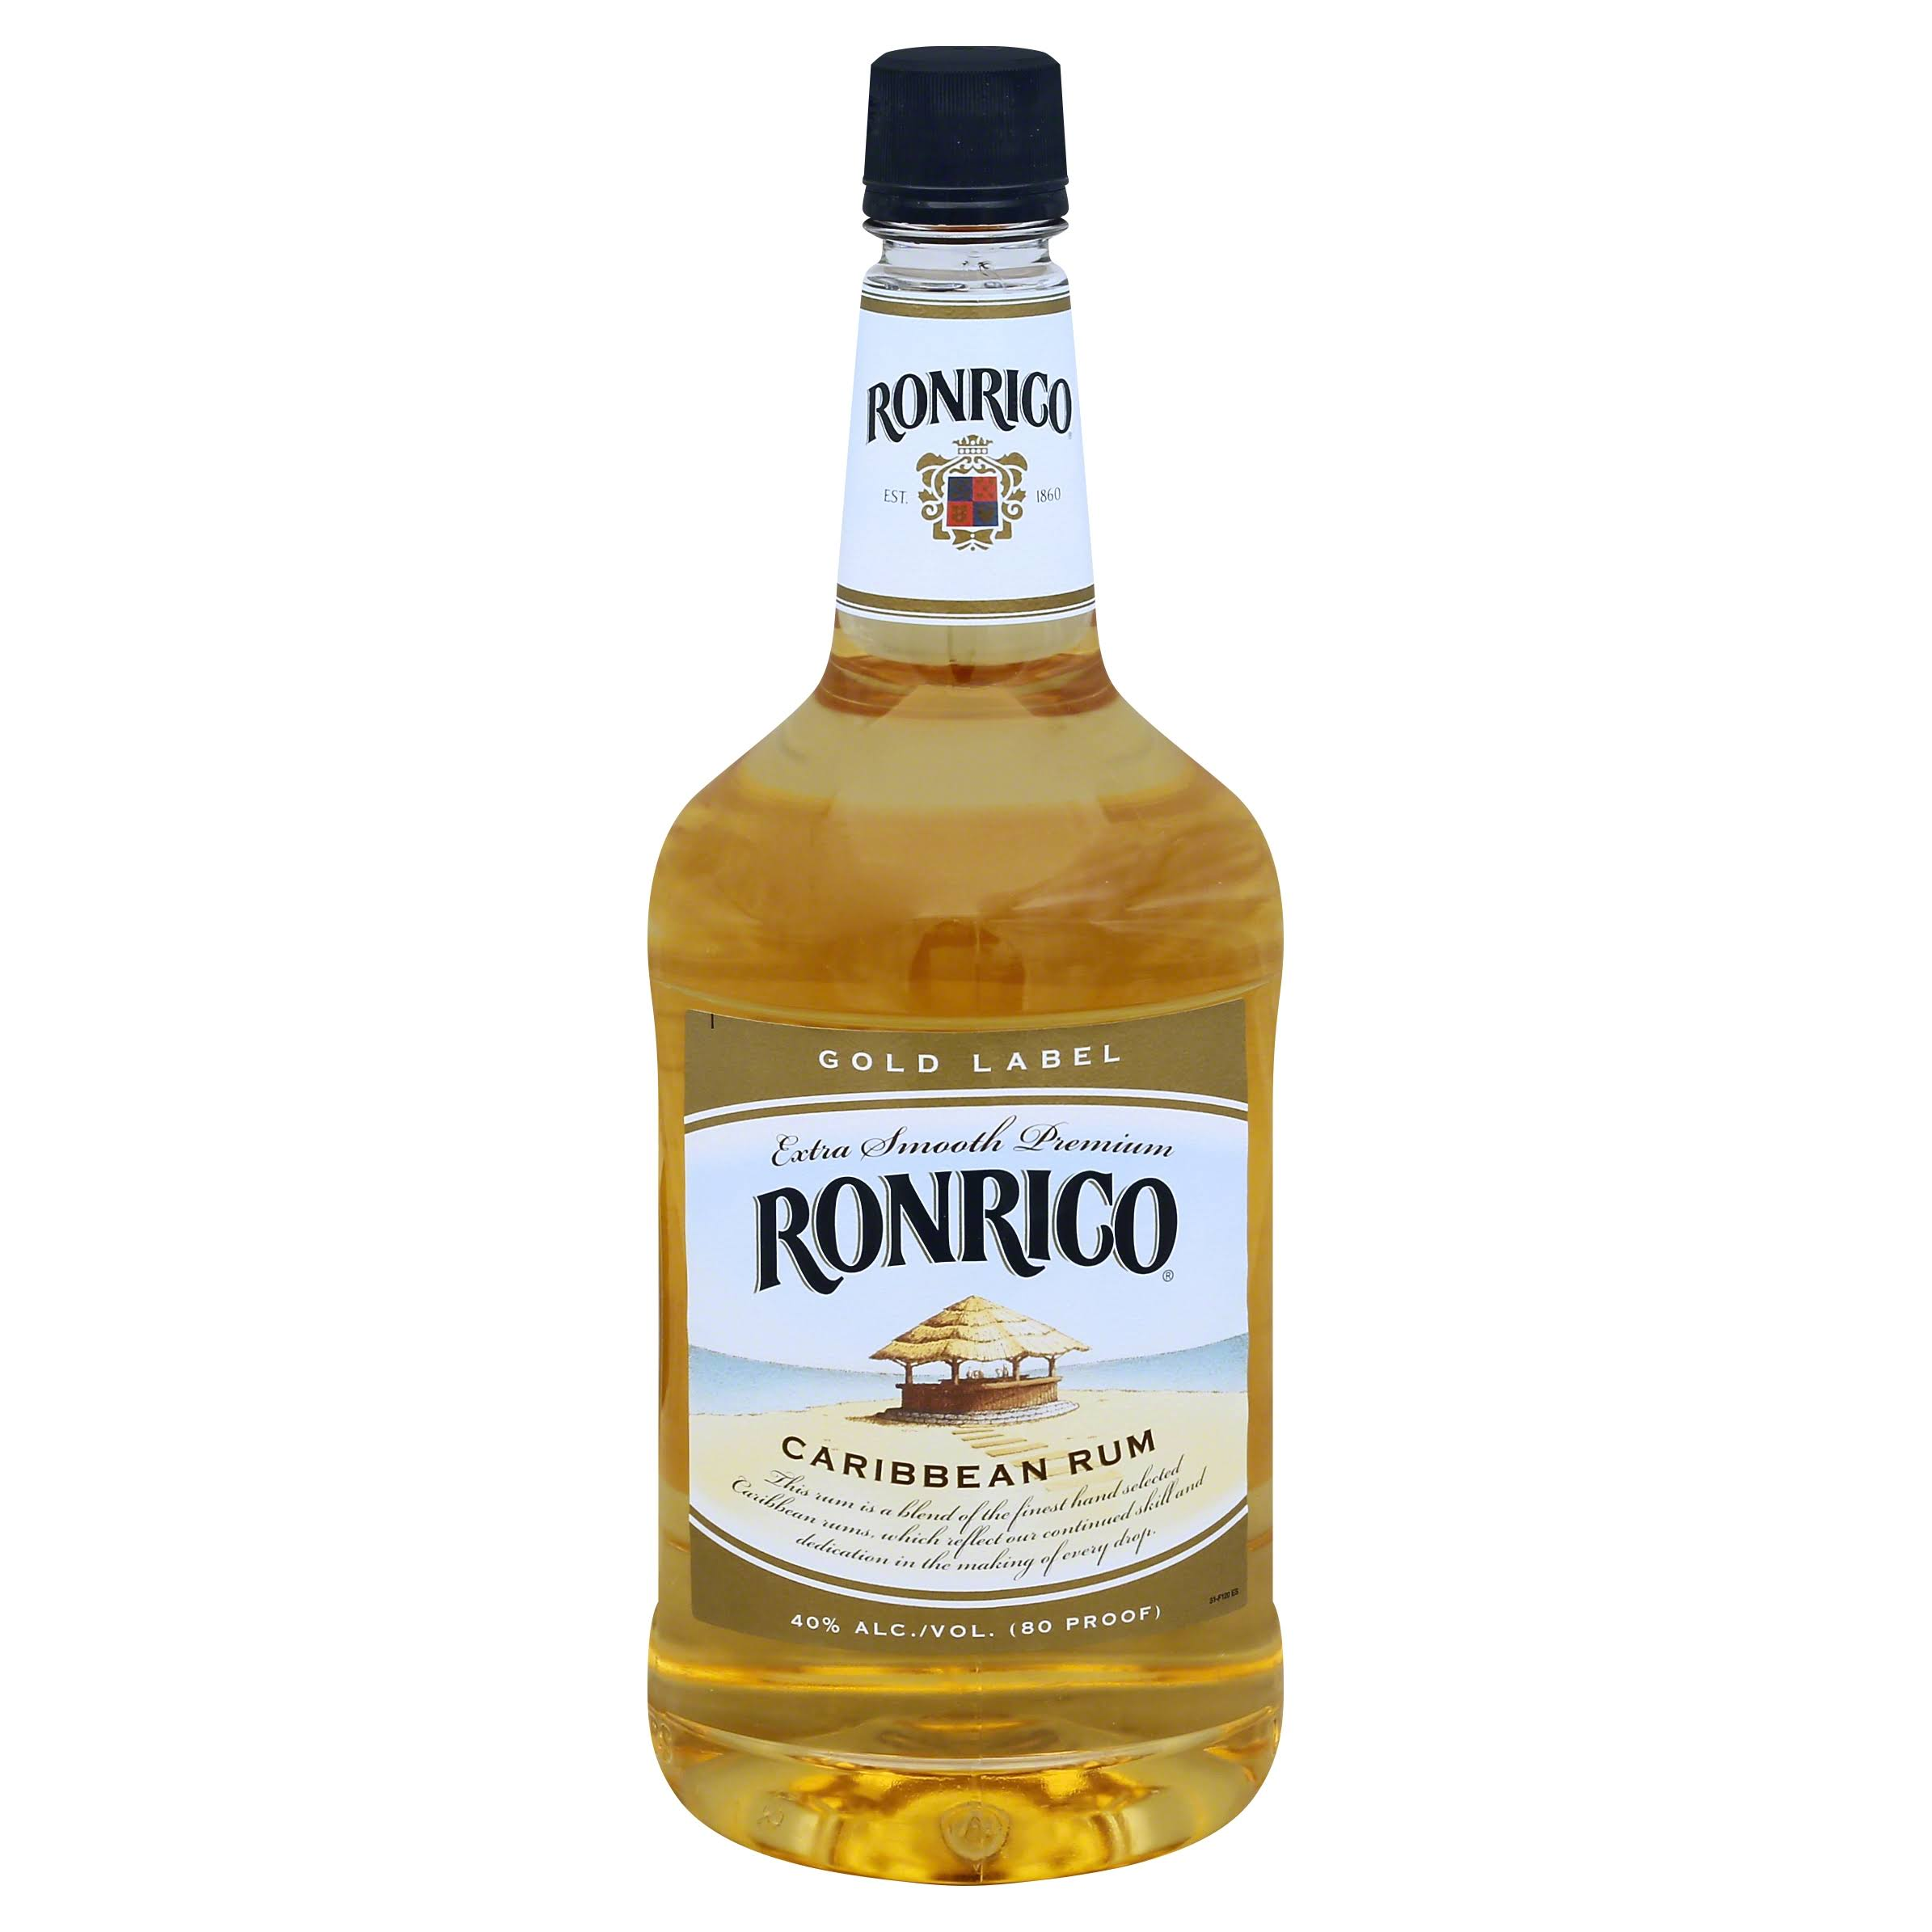 Ron Rico Caribbean Rum - 1.75L, Gold Label